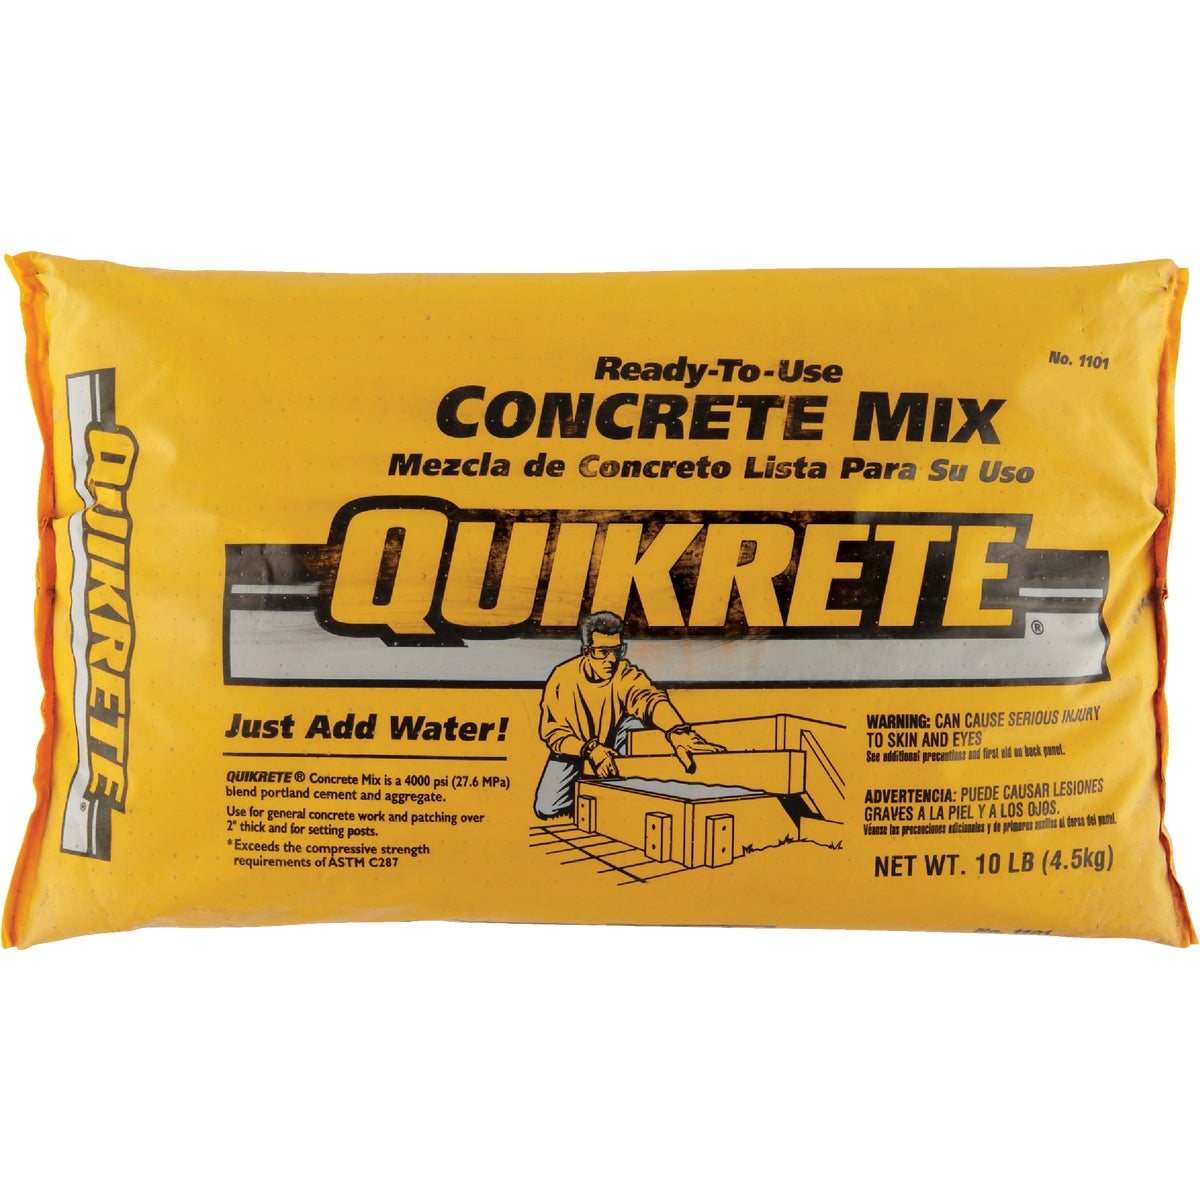 10LB CONCRETE MIX - 110110 by Quikrete Co